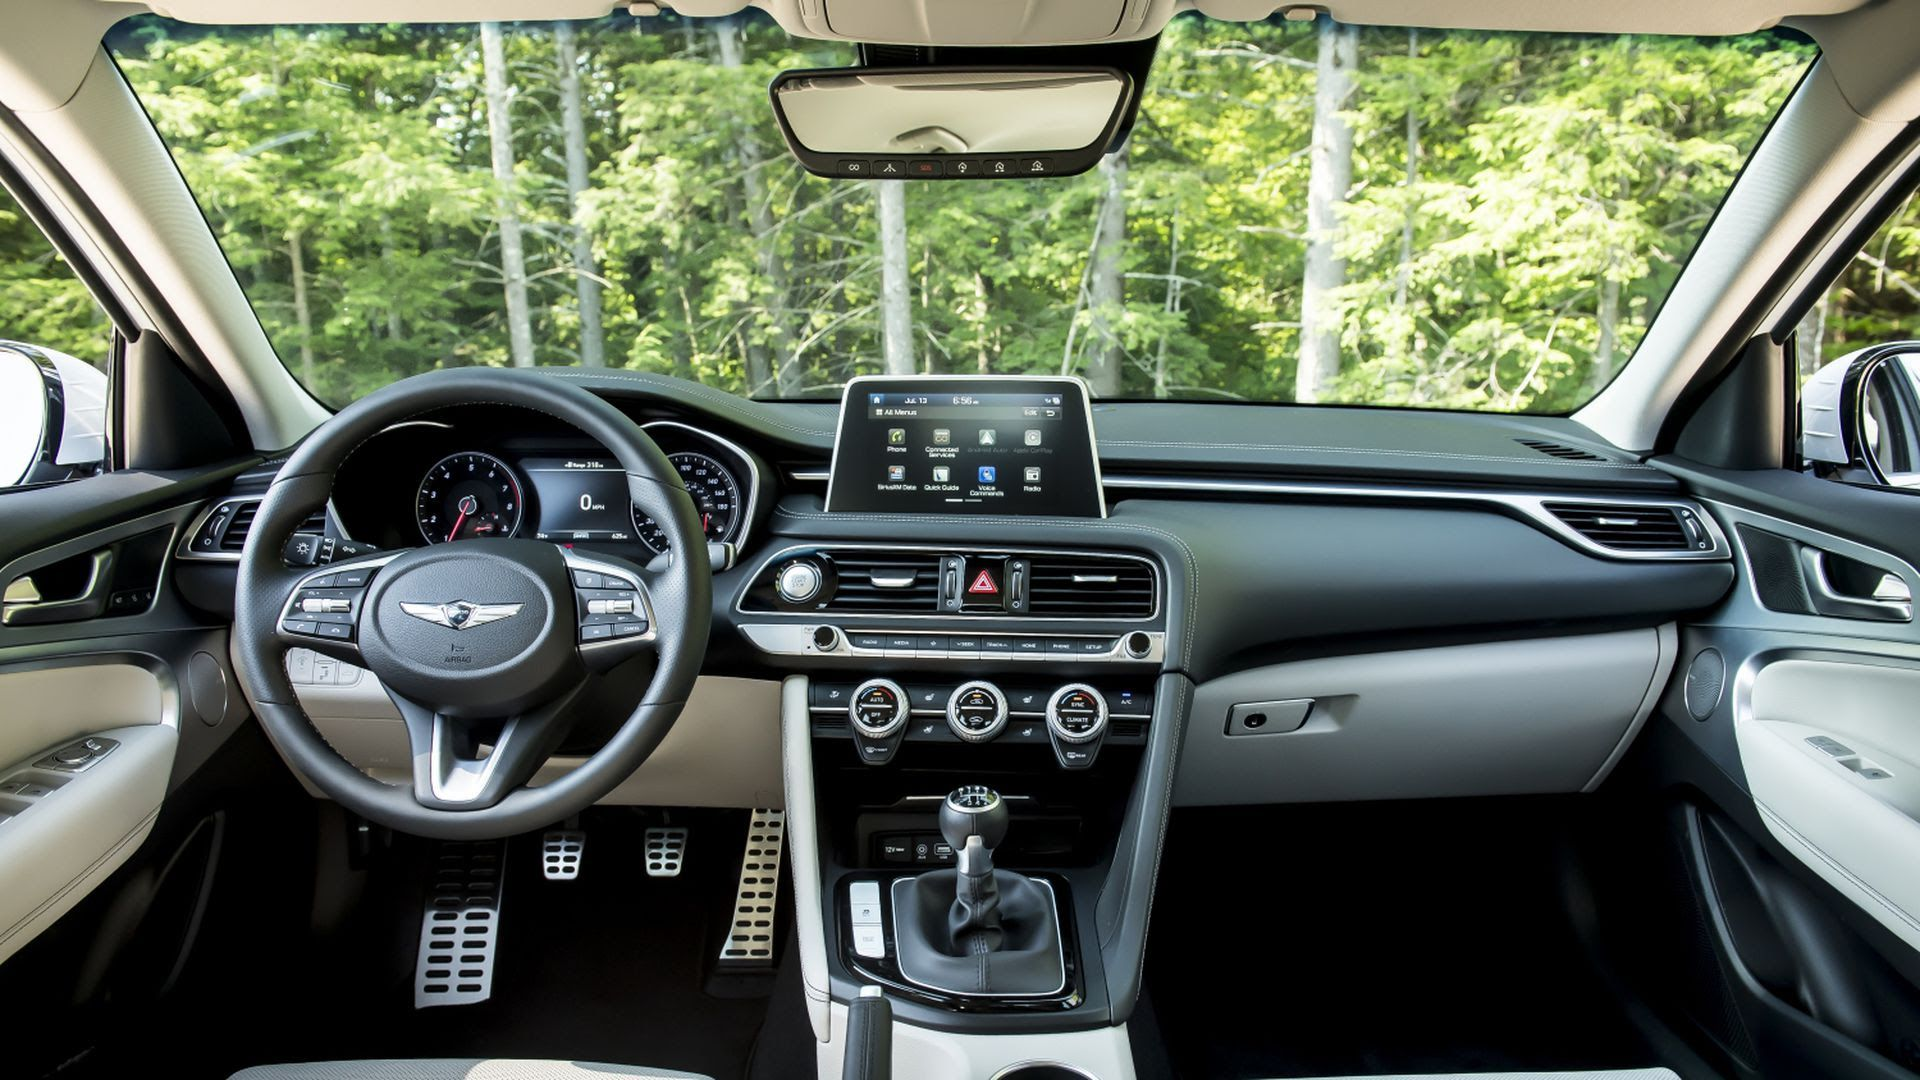 What We're Driving: The Genesis G70